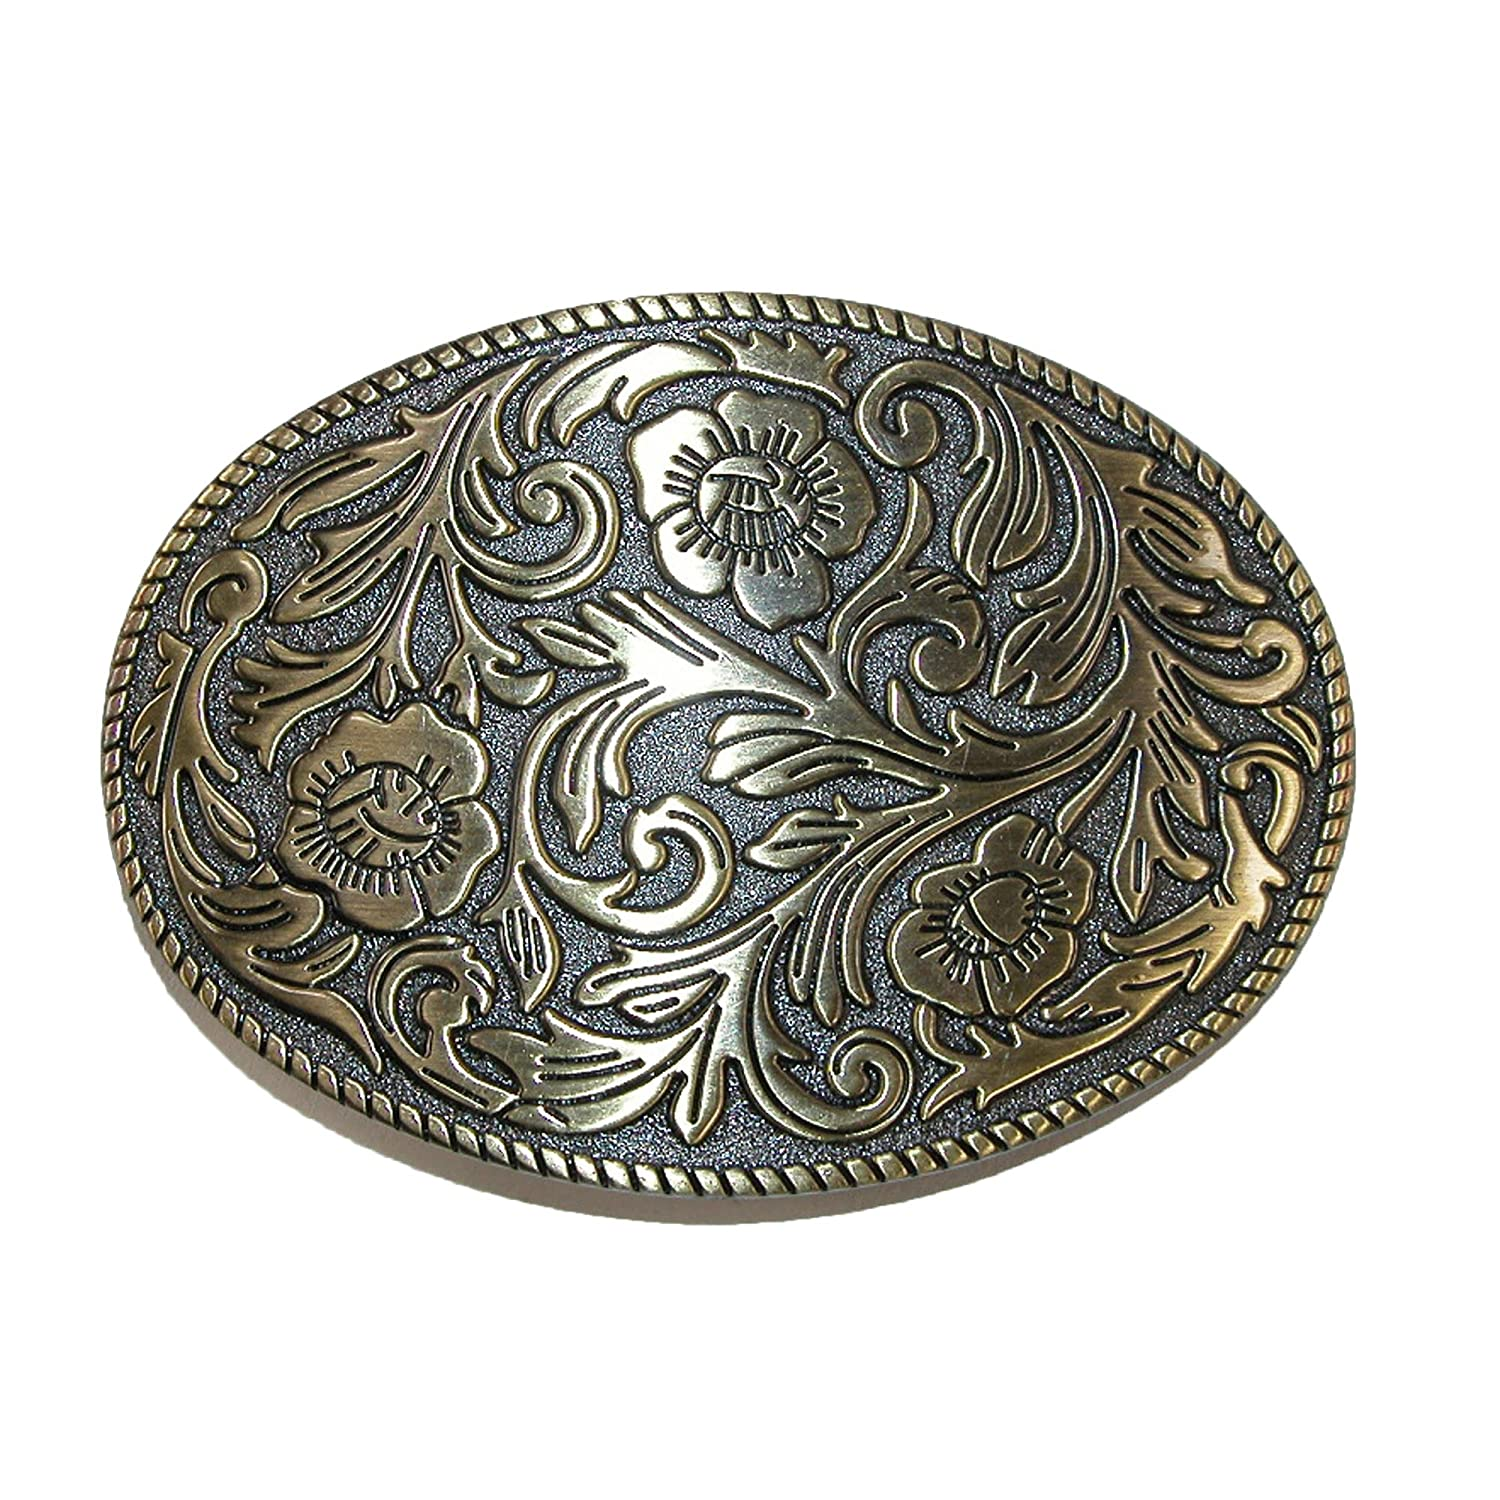 CTM® Floral Print Belt Buckle, Silver RR-542-SIL